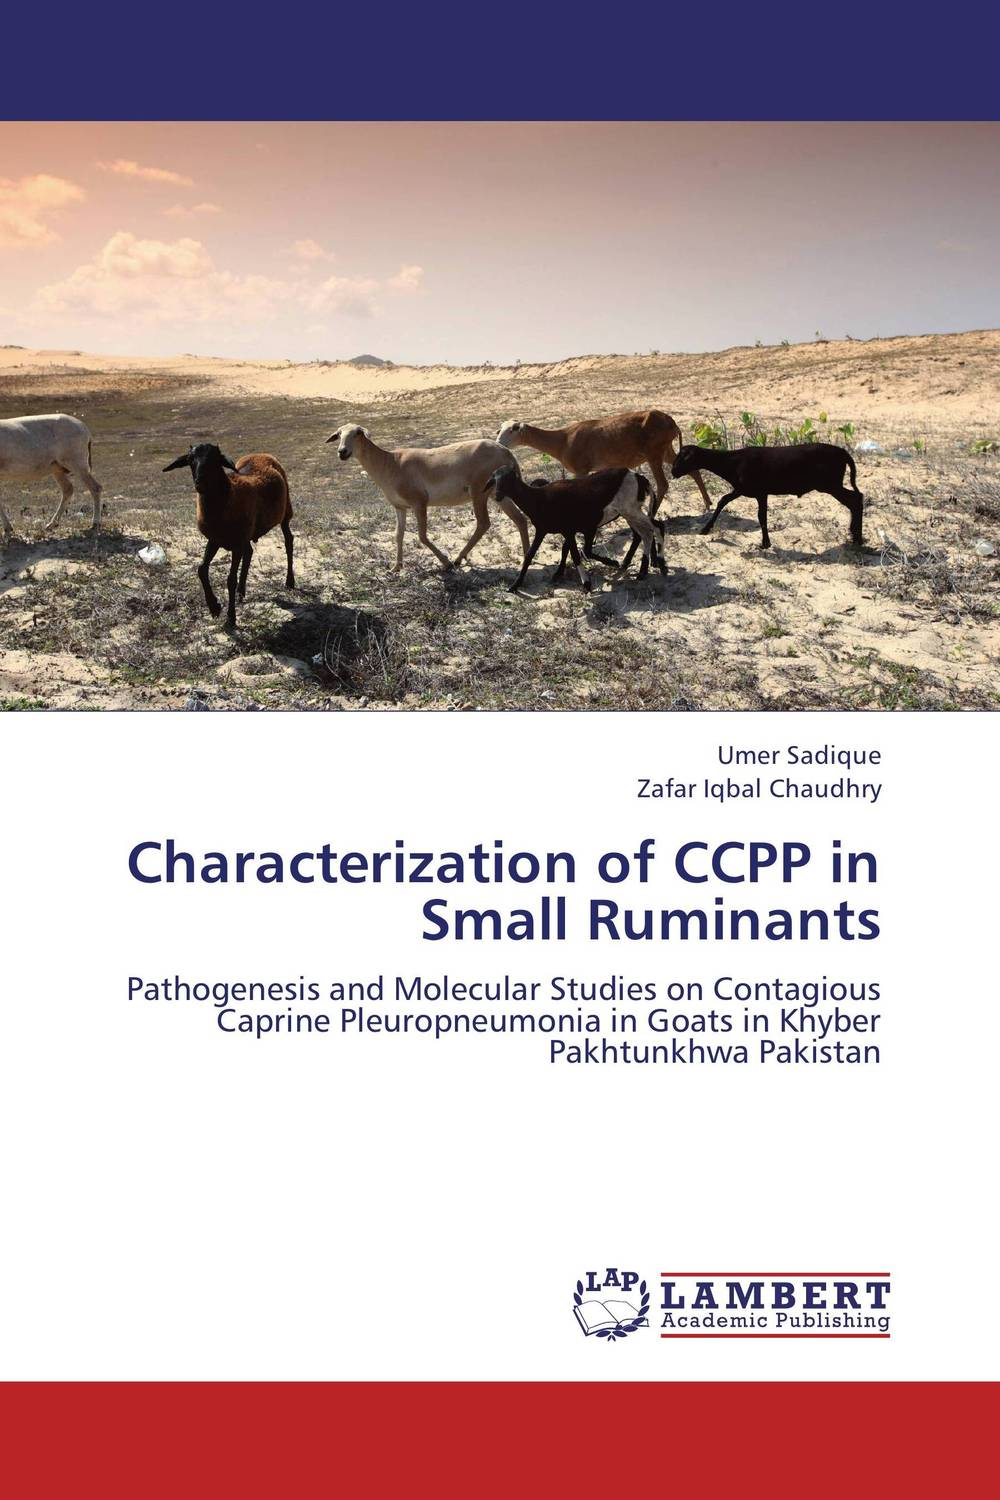 Characterization of CCPP in Small Ruminants tapan kumar dutta and parimal roychoudhury diagnosis and characterization of bacterial pathogens in animal